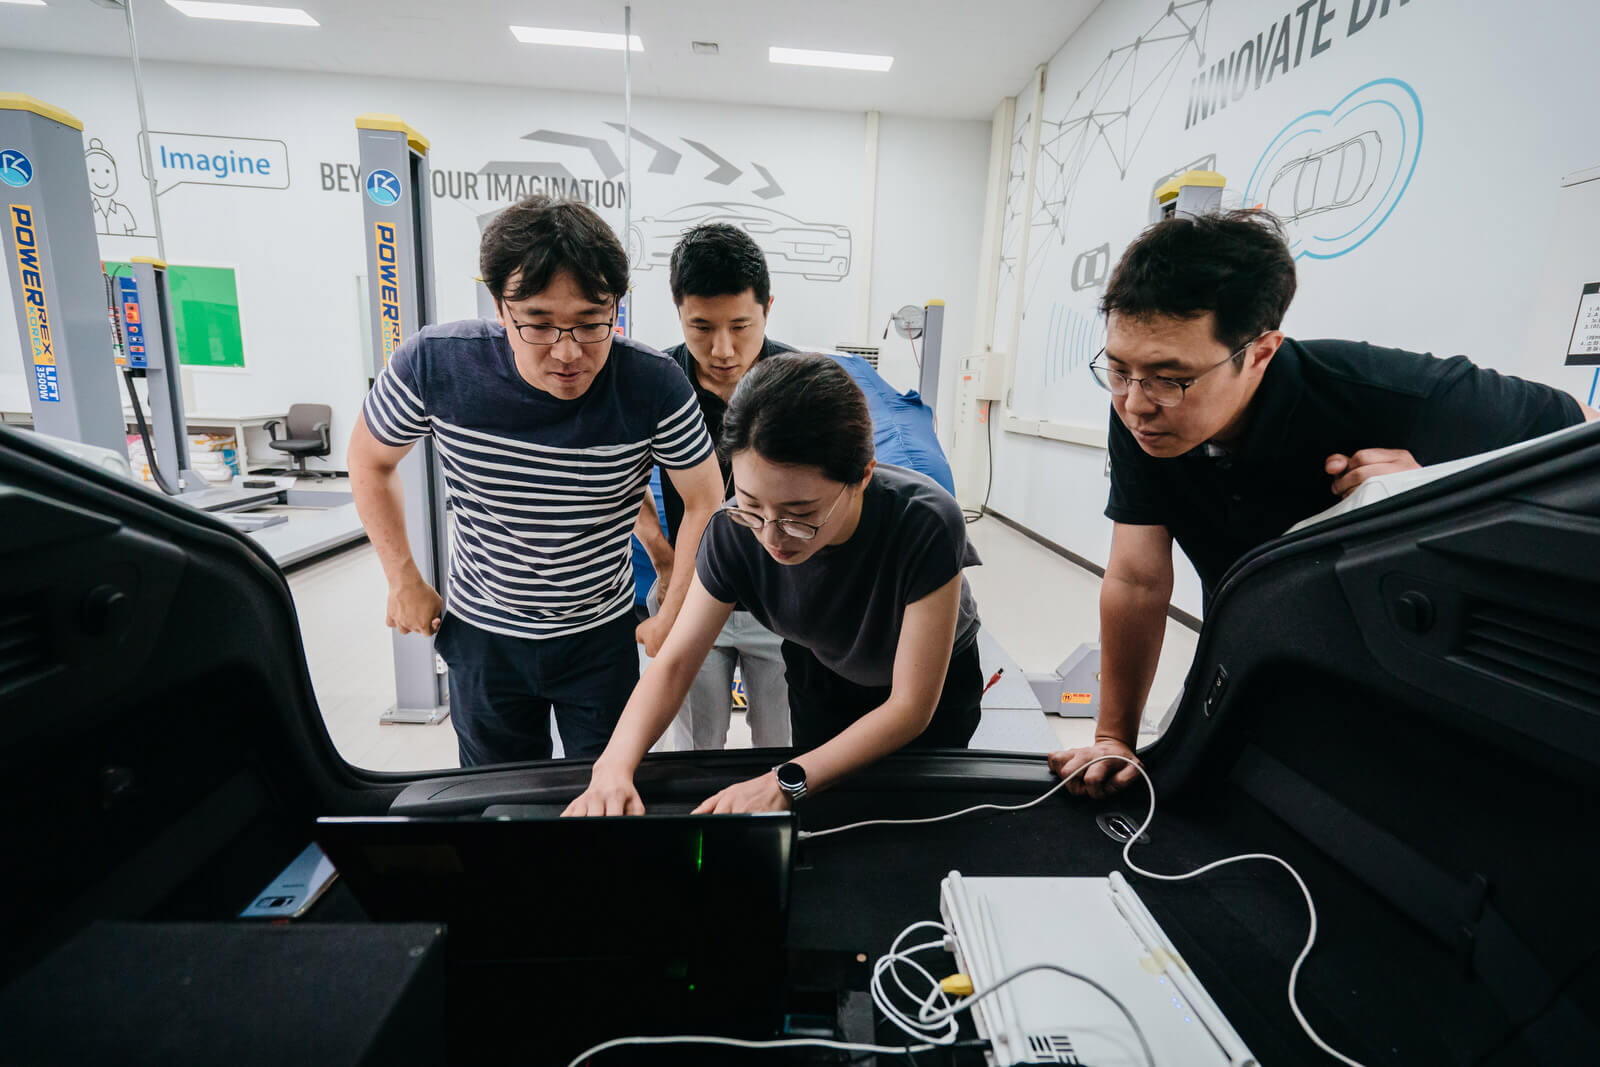 Samsung engineers from the Digital Cockpit Lab update the software of a smart vehicle on a laptop.